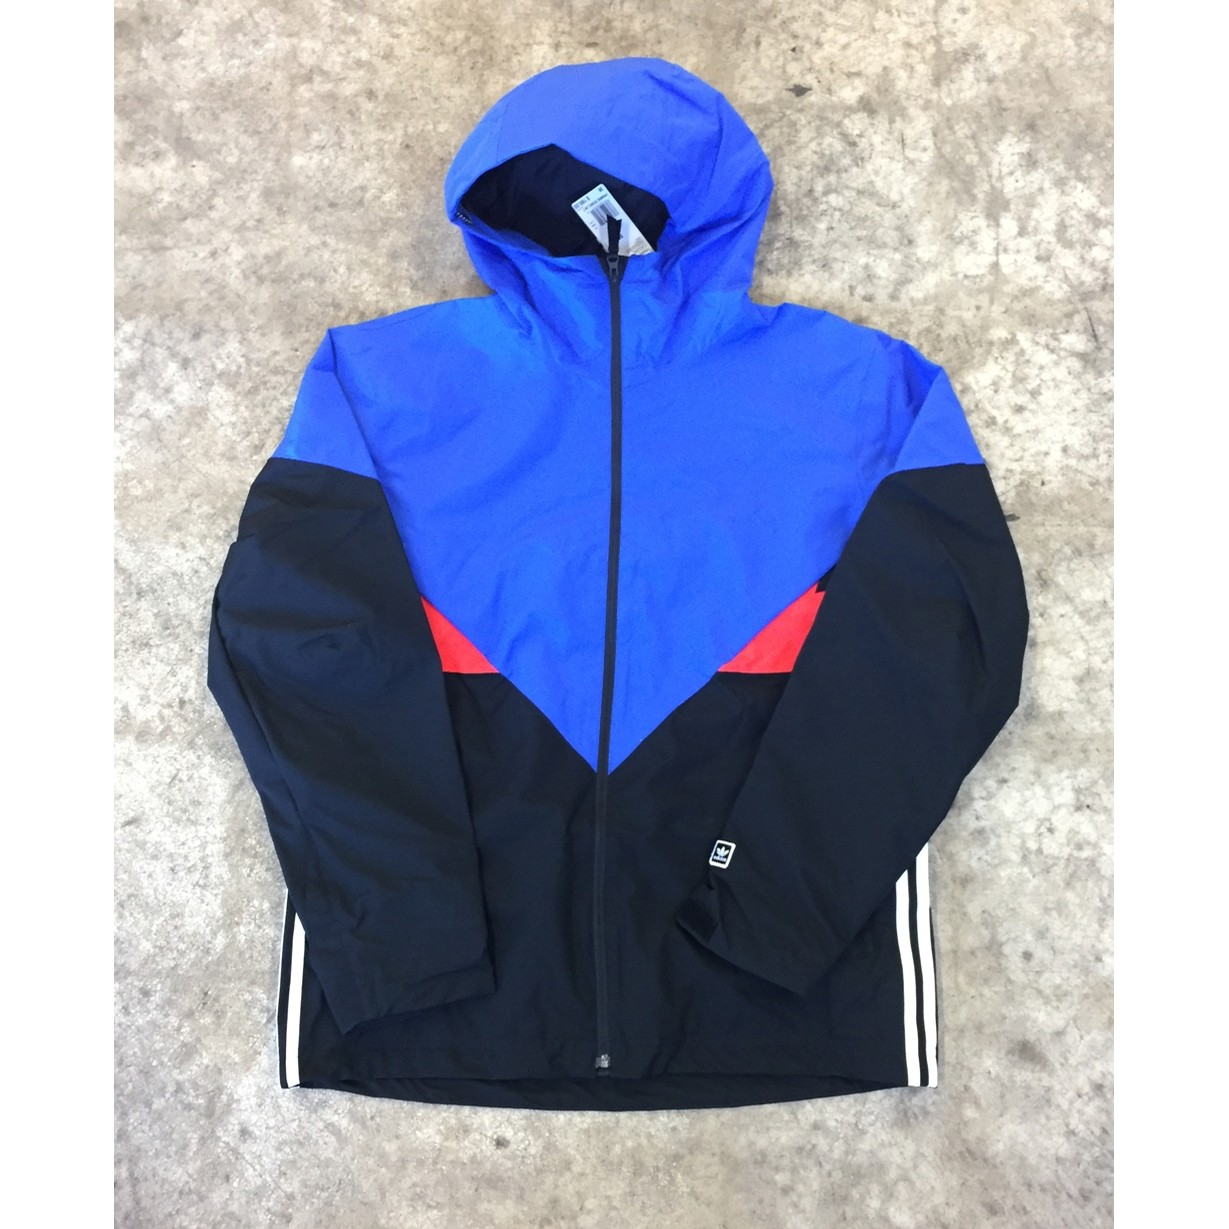 Premiere Riding Jacket (blk/wht/blu/red)